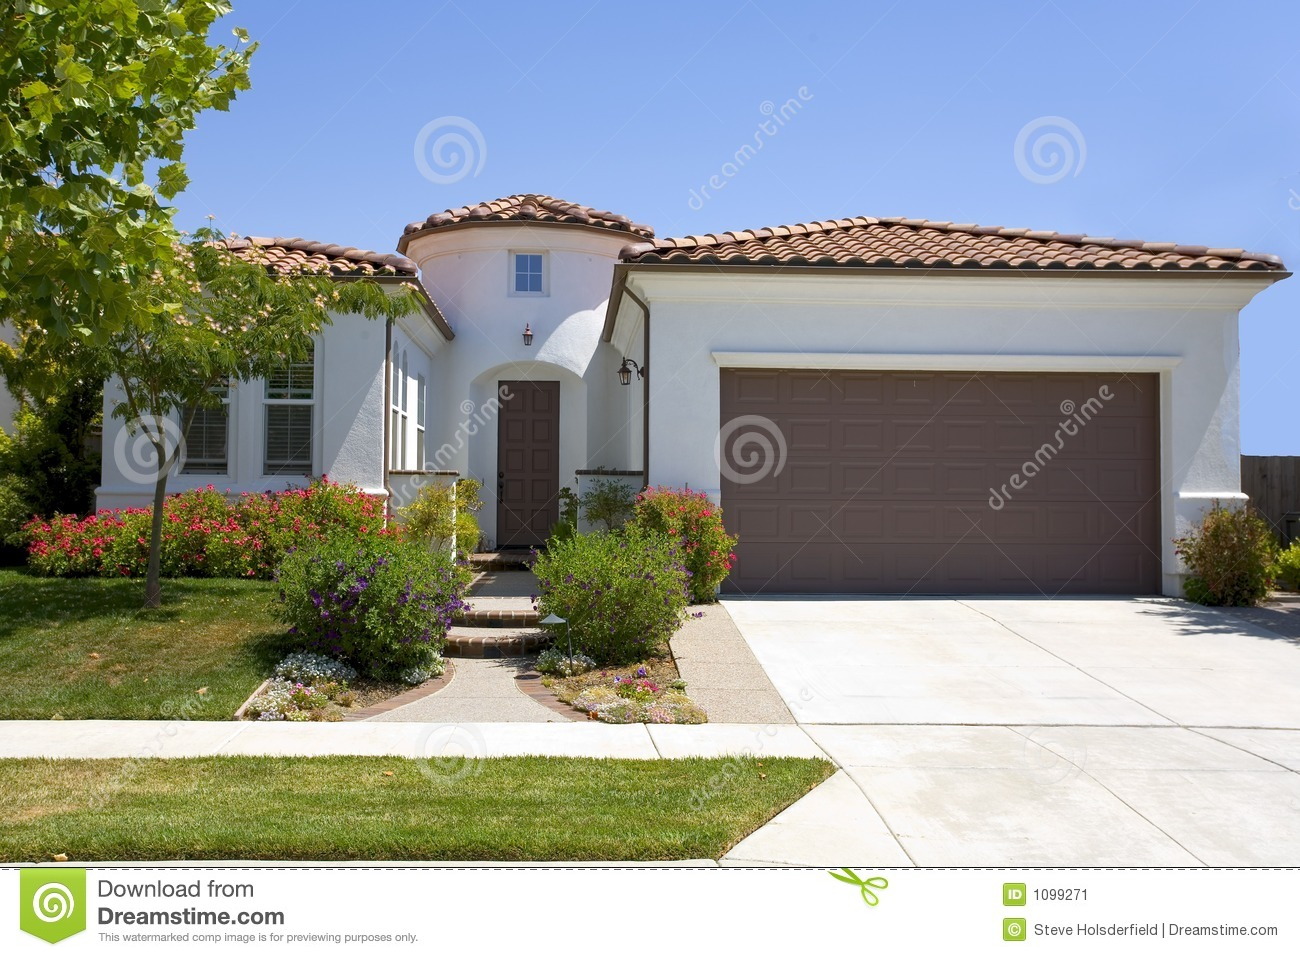 Spanish style stucco home stock photos royalty free pictures for Spanish style homes for sale near me